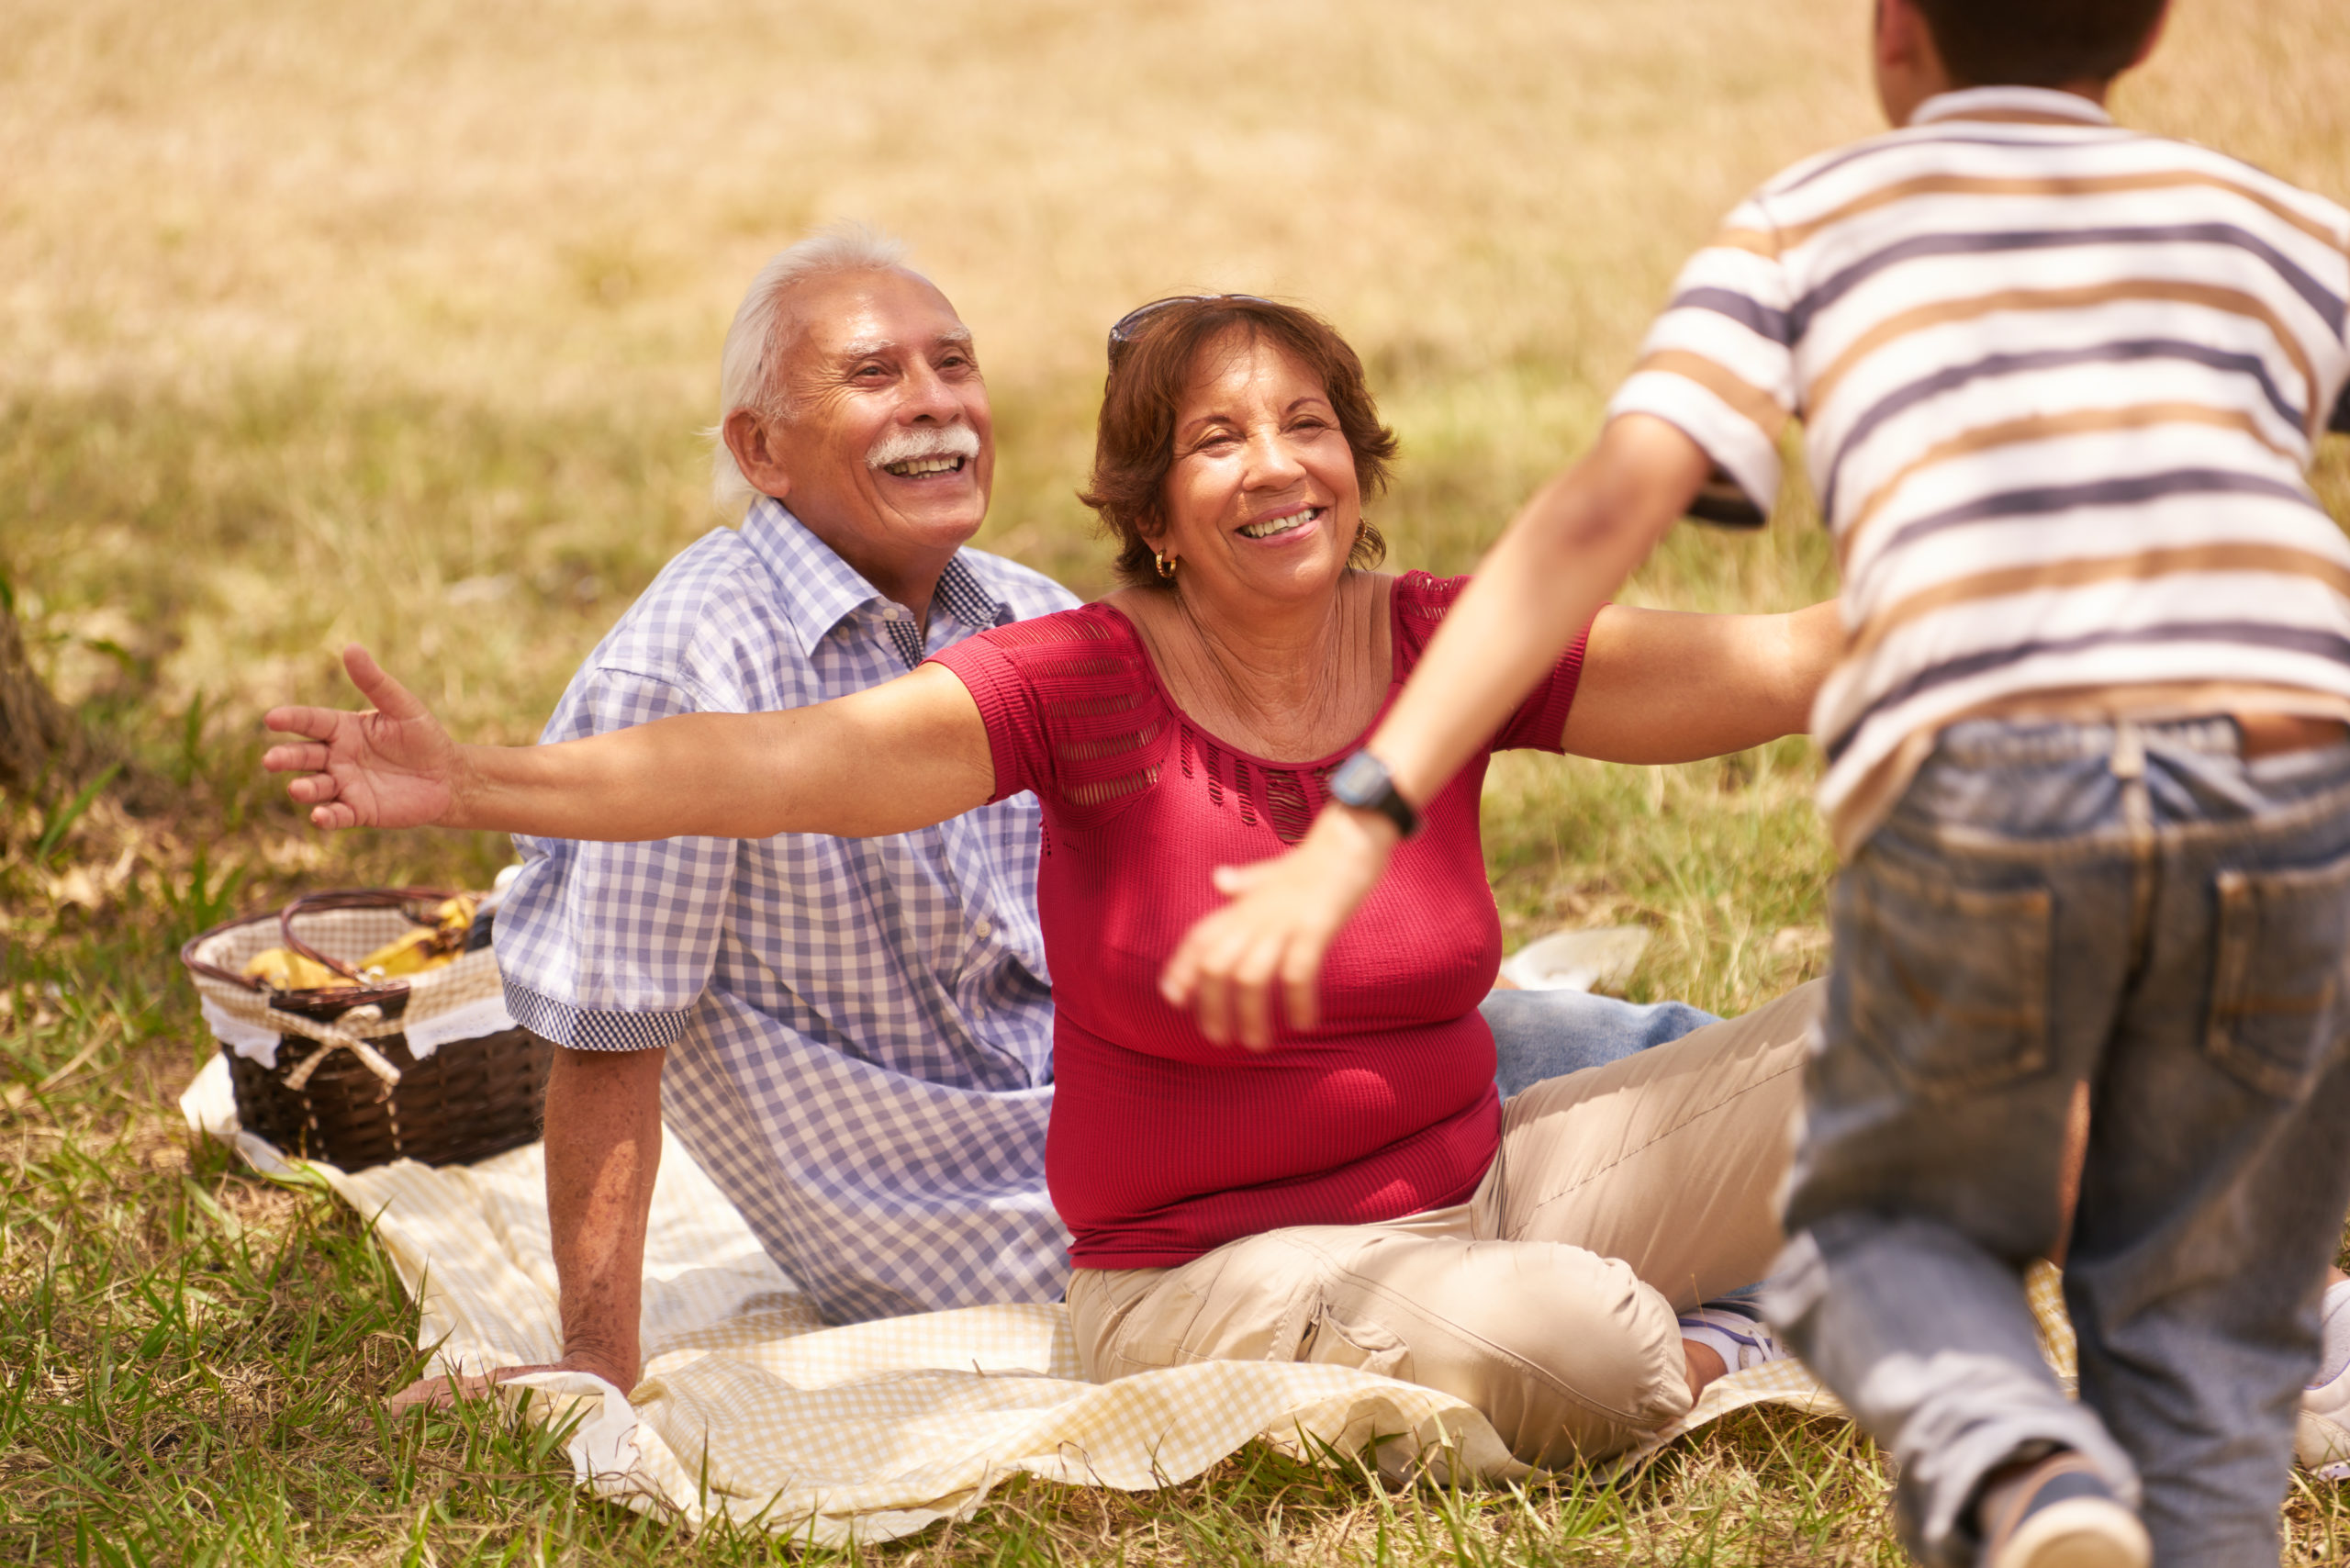 Old people, senior couple, elderly man and woman. Outdoor family having fun with happy grandpa and grandma hugging boy at picnic in park.